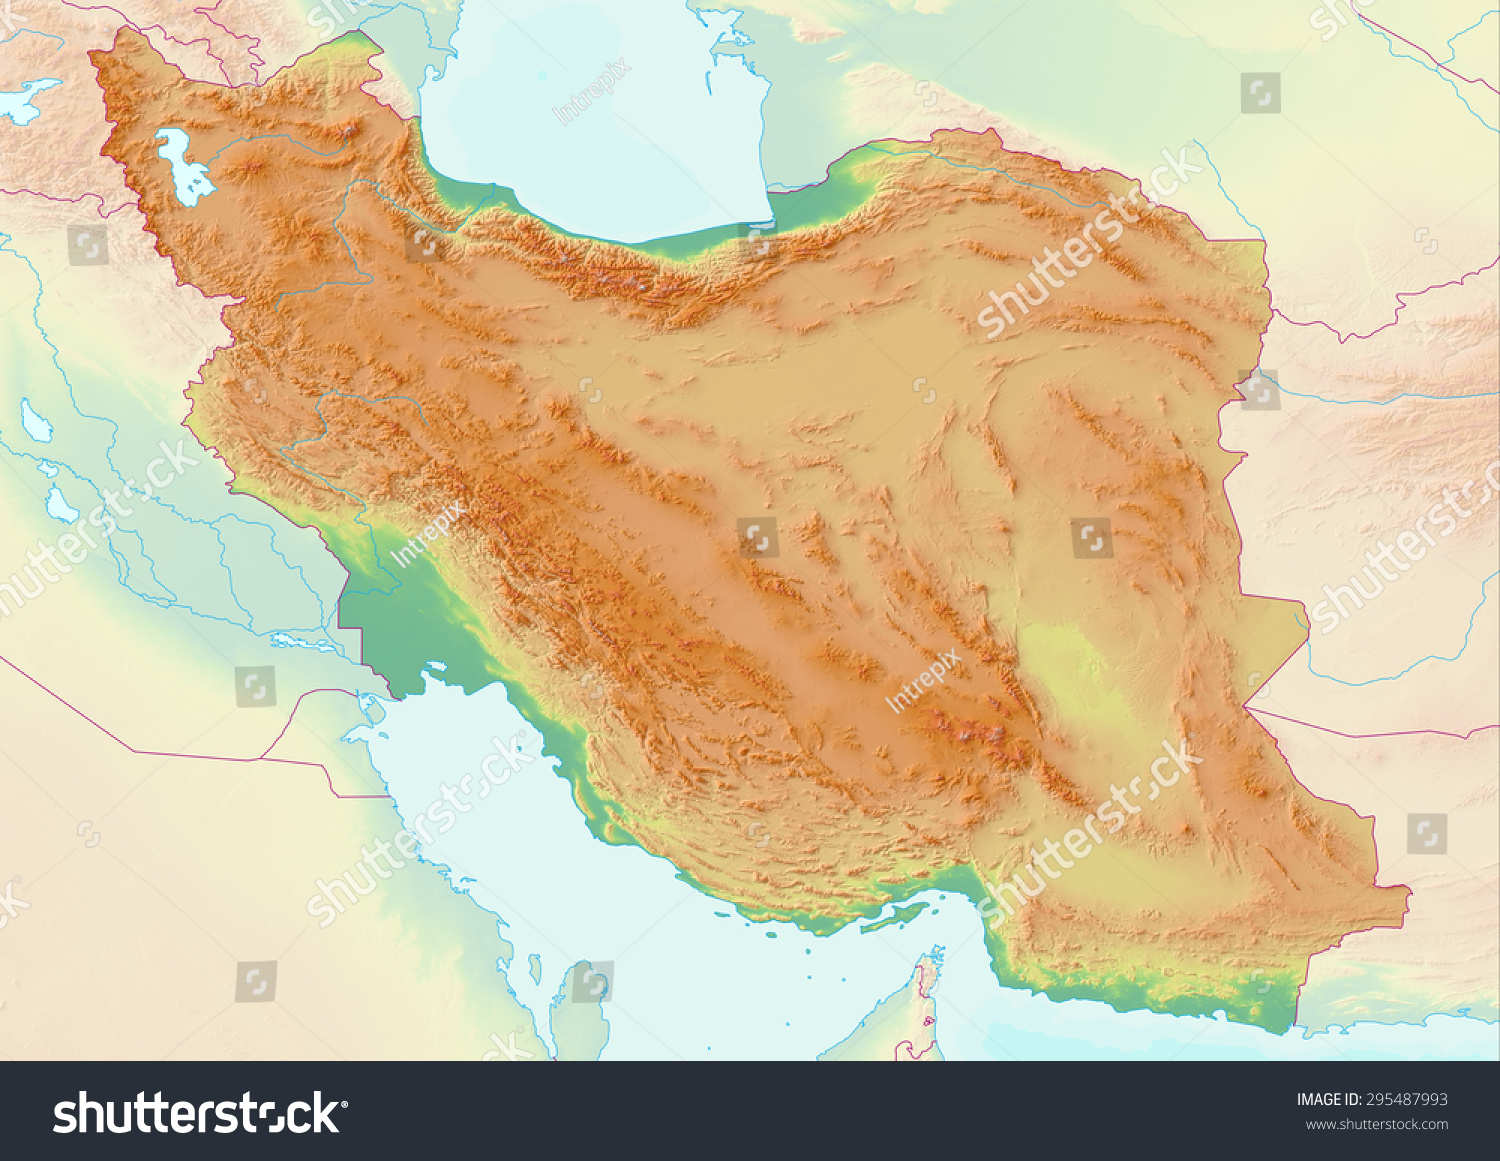 topographic map of iran with shaded relief and elevation colors elements of this image furnished